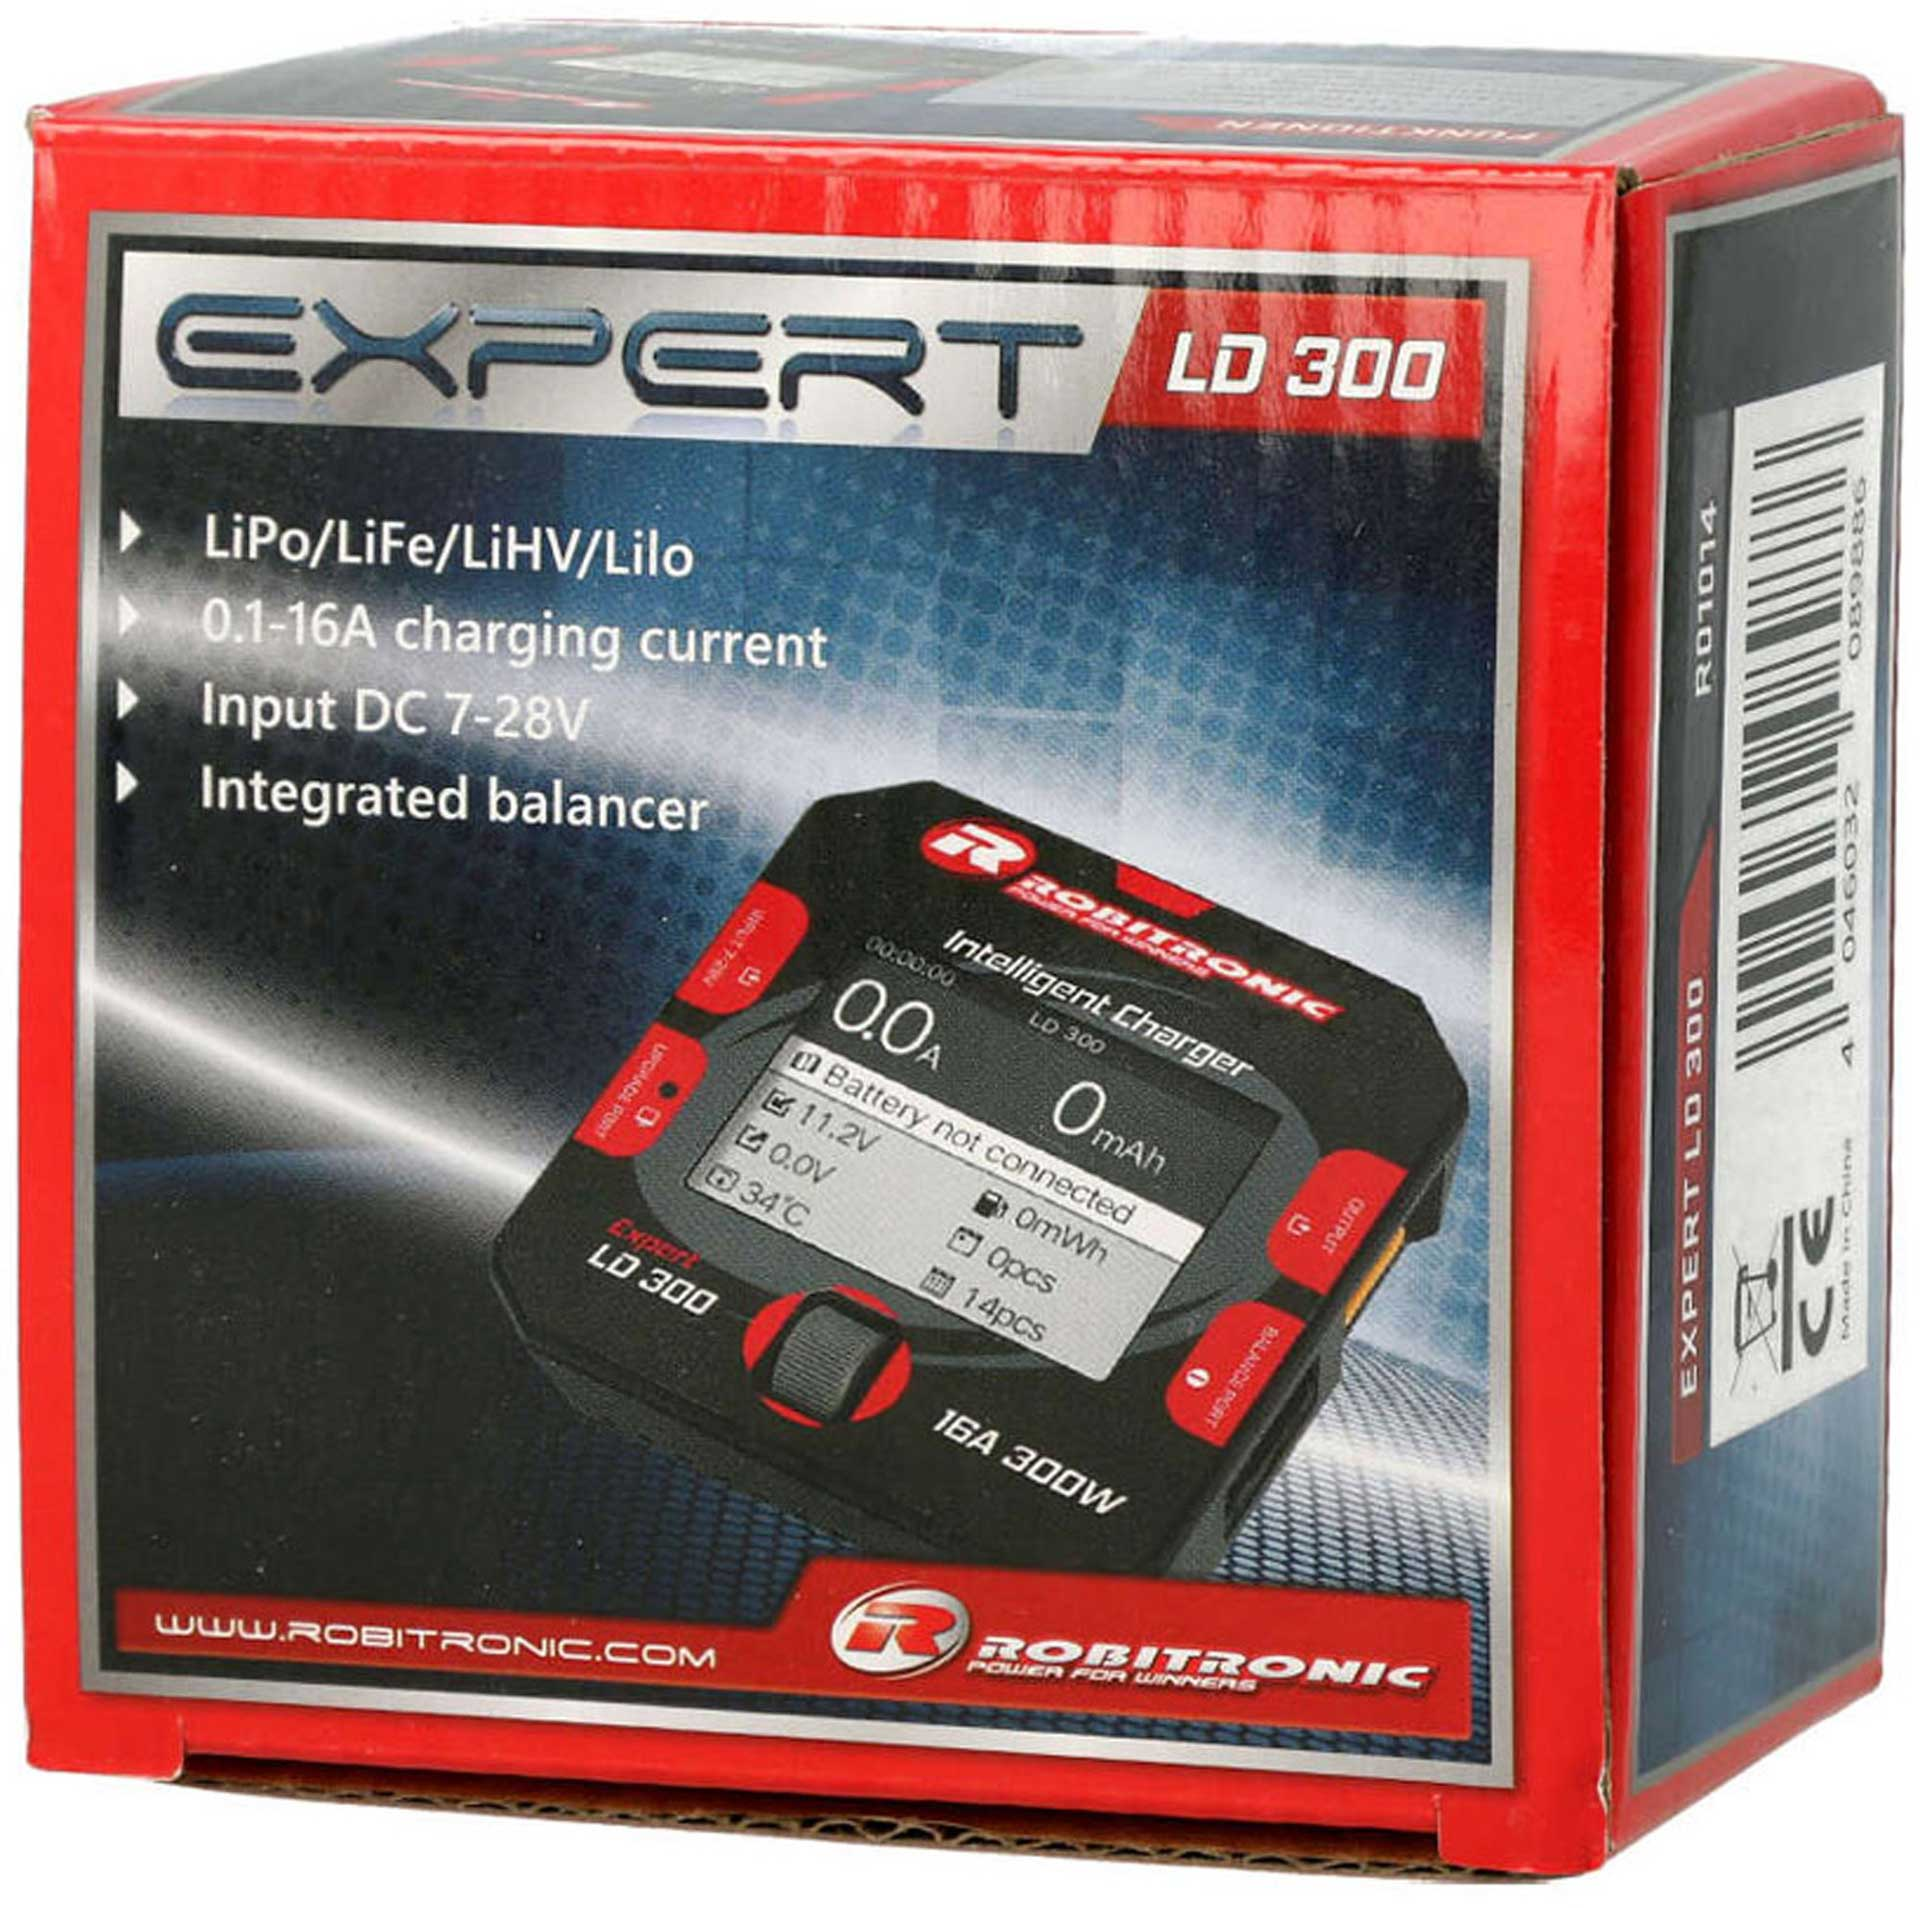 ROBITRONIC EXPERT LD 300 CHARGER 1-6S 16A 300W